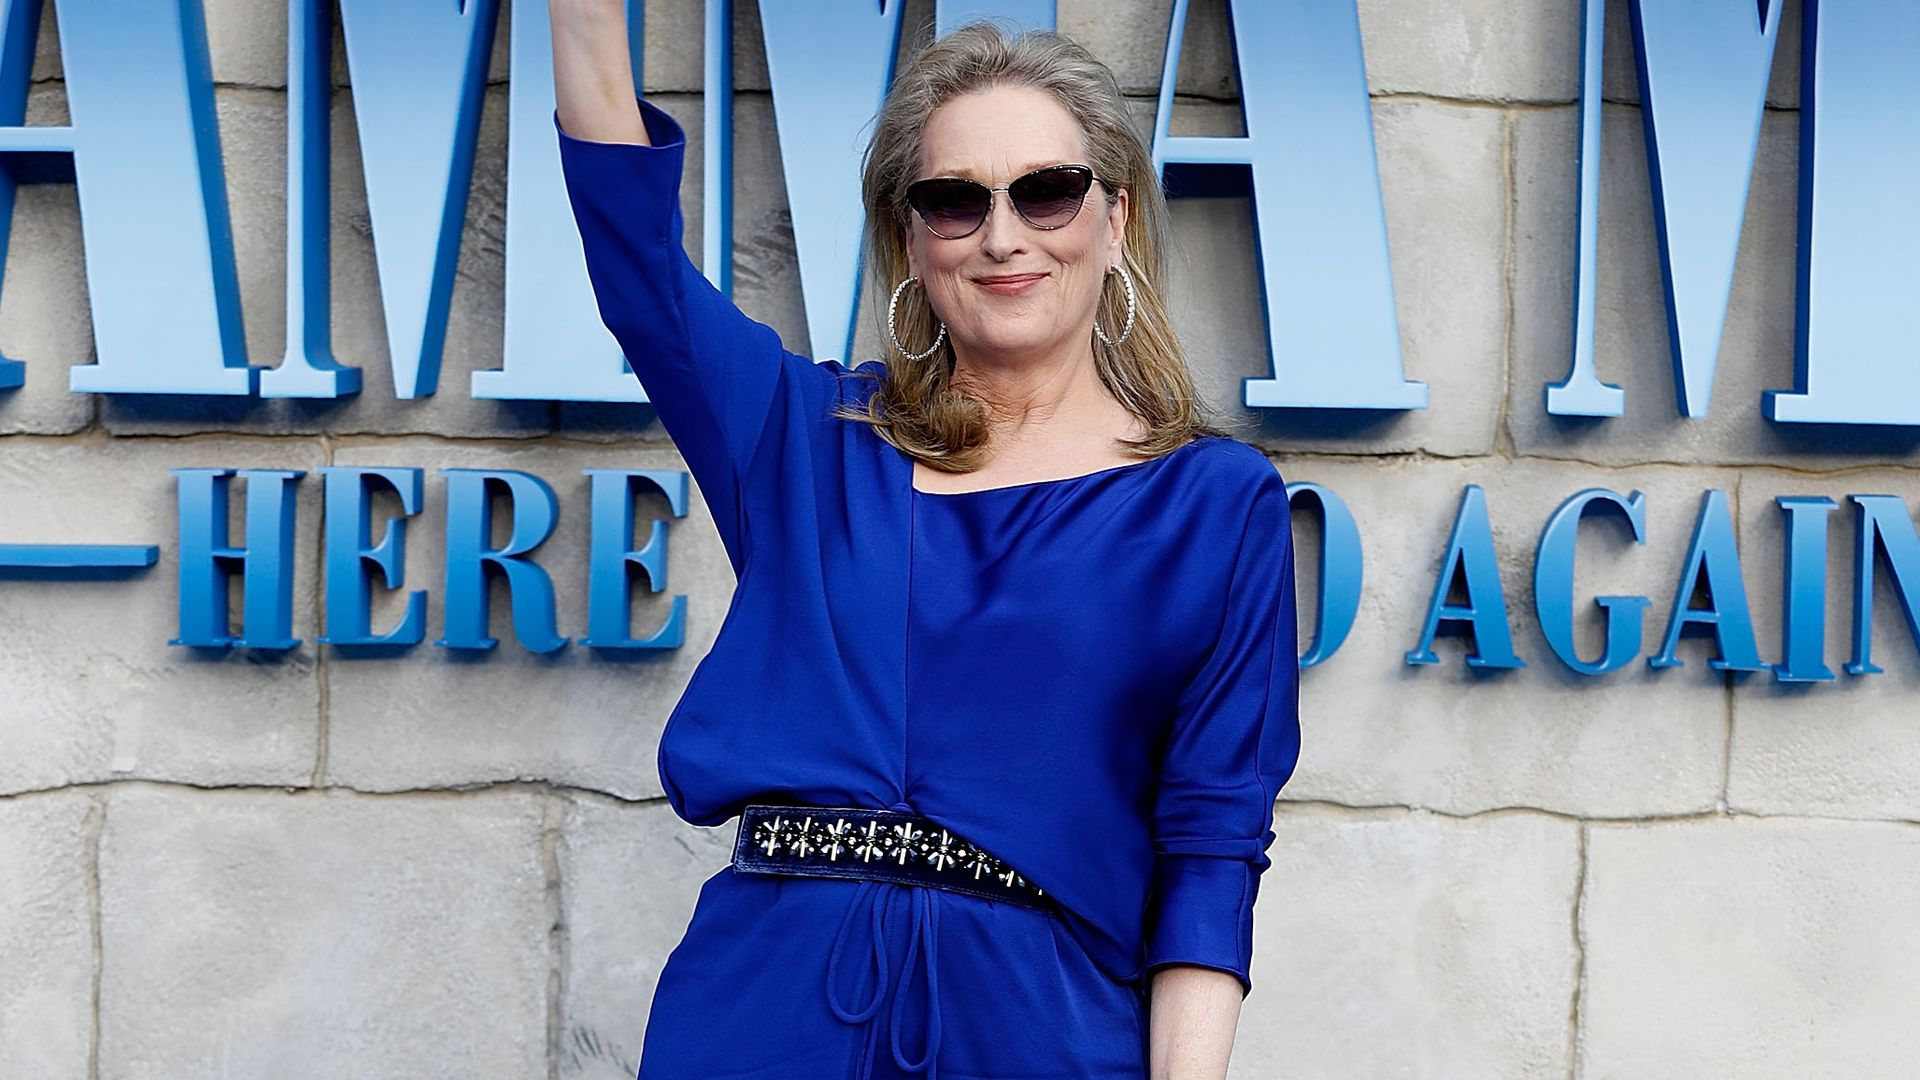 mamma mia 2 was ist mit donna passiert f nf fan theorien. Black Bedroom Furniture Sets. Home Design Ideas